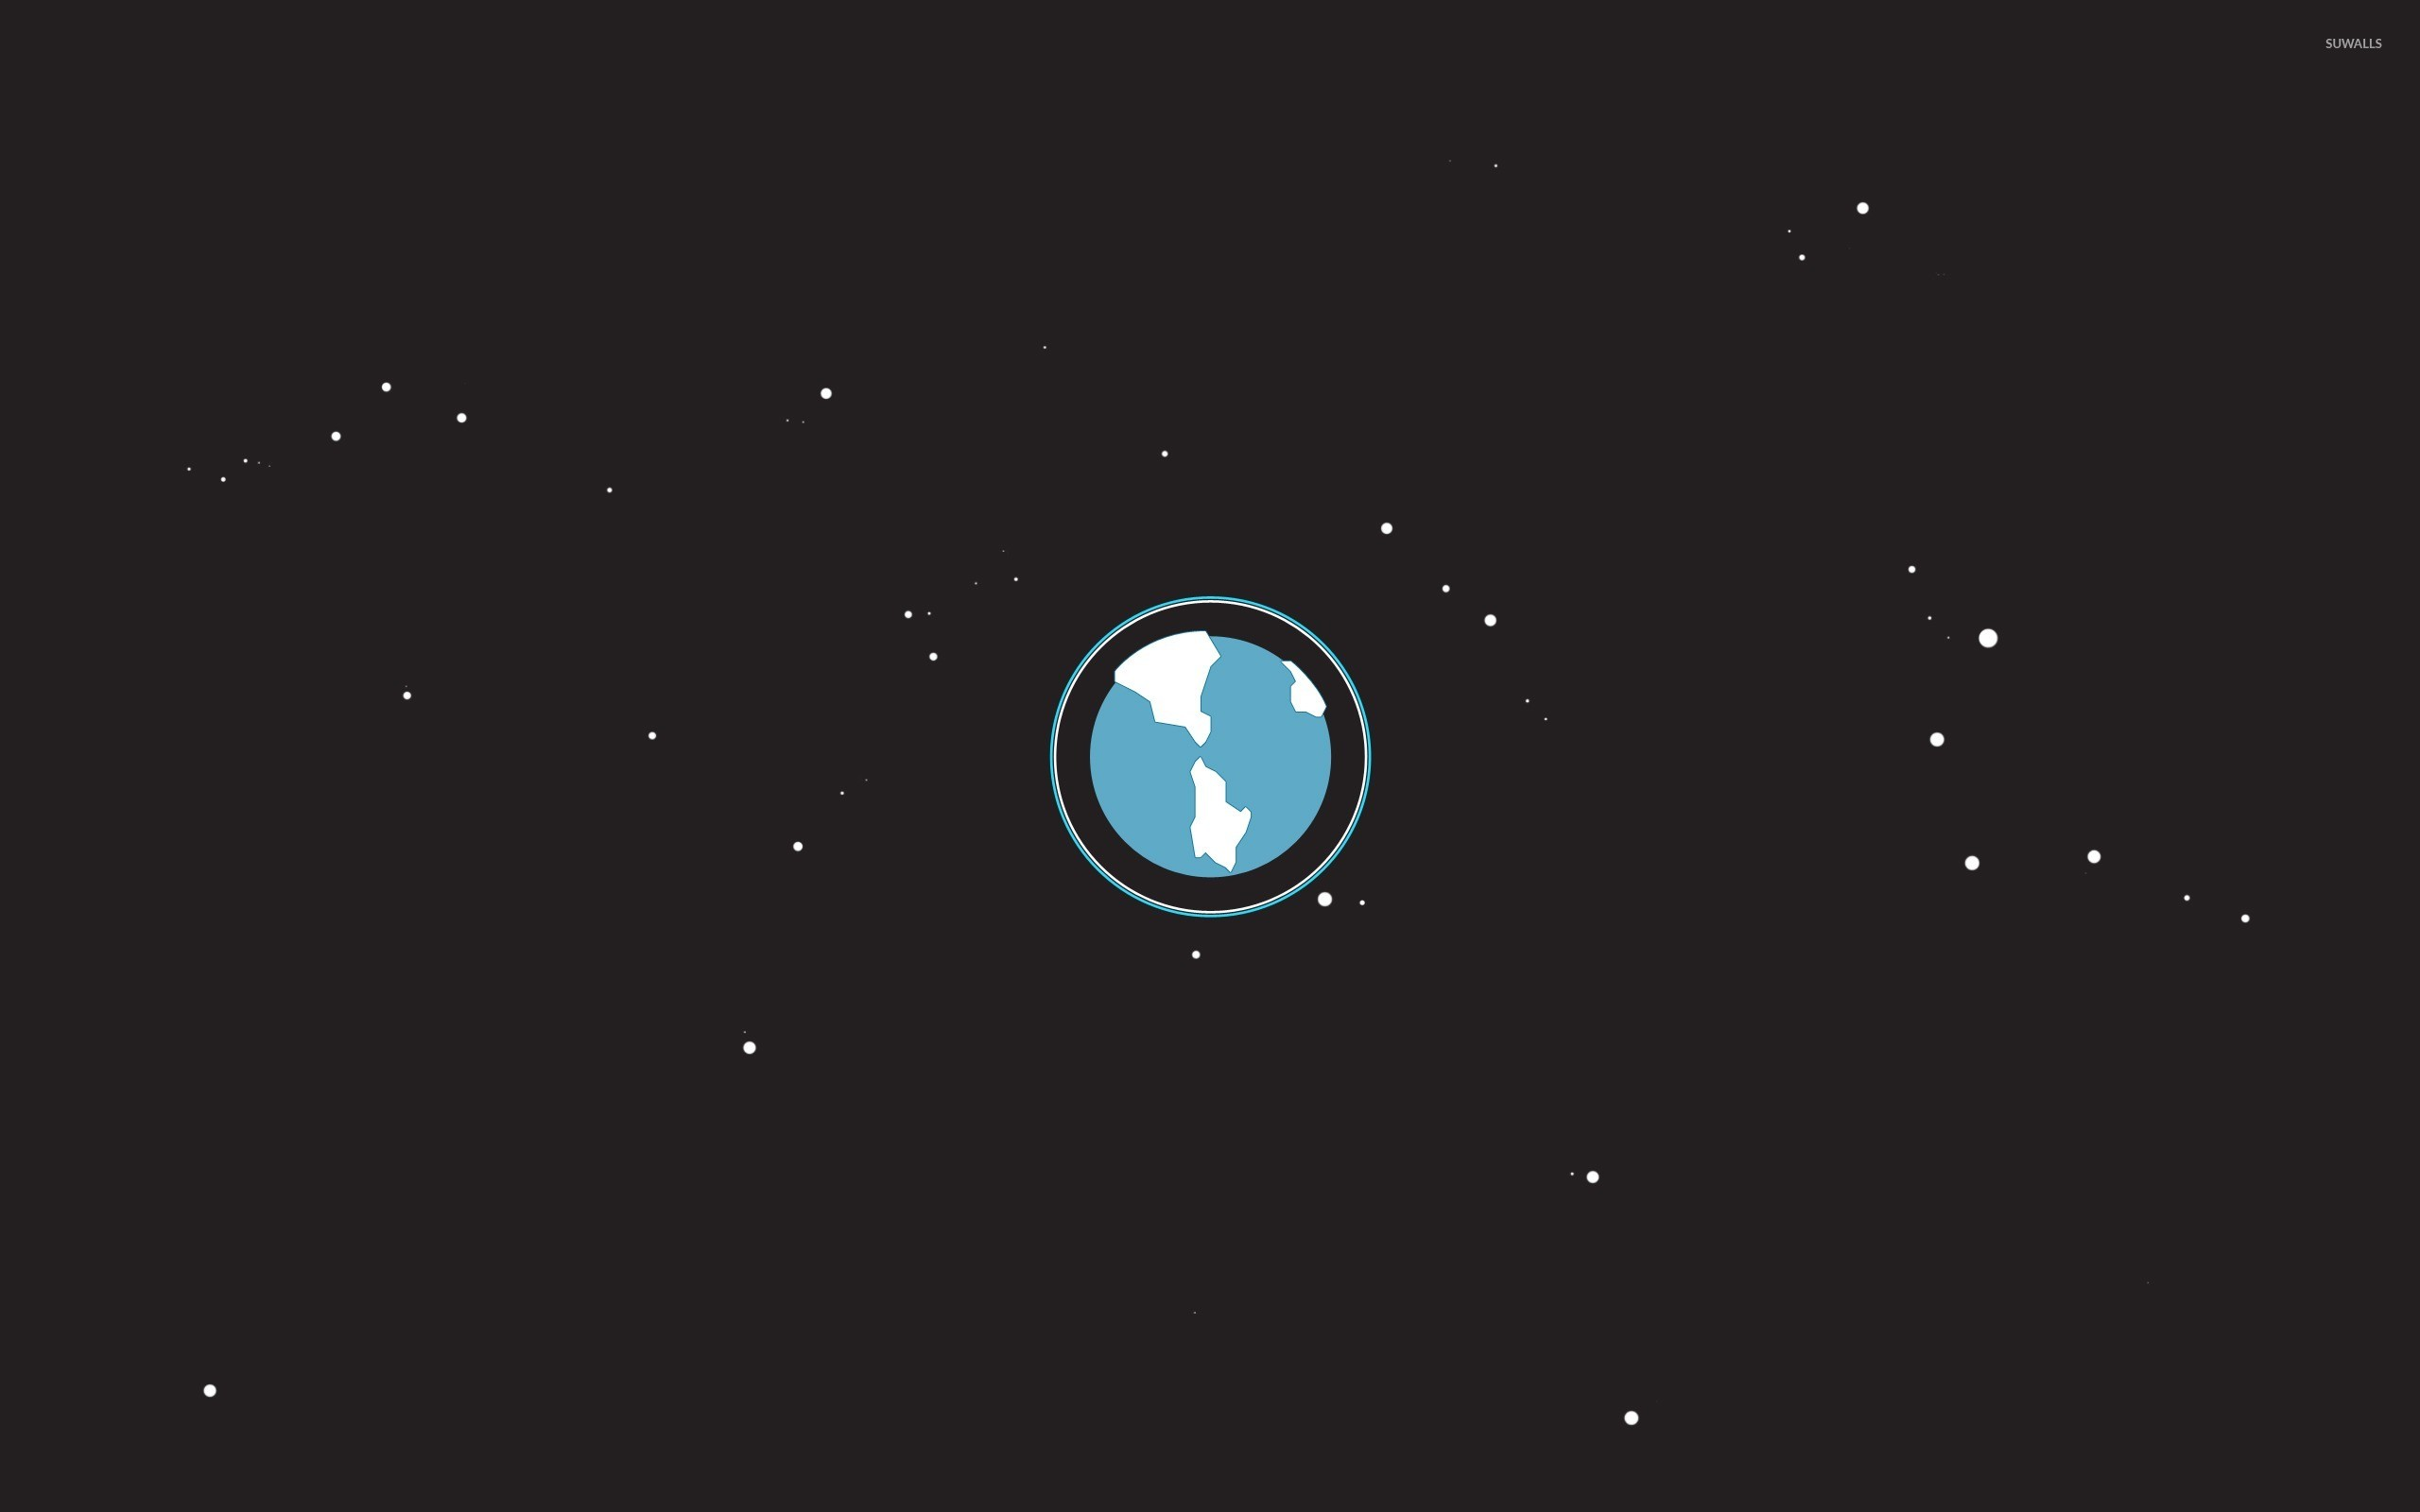 Earth from space wallpaper jpg